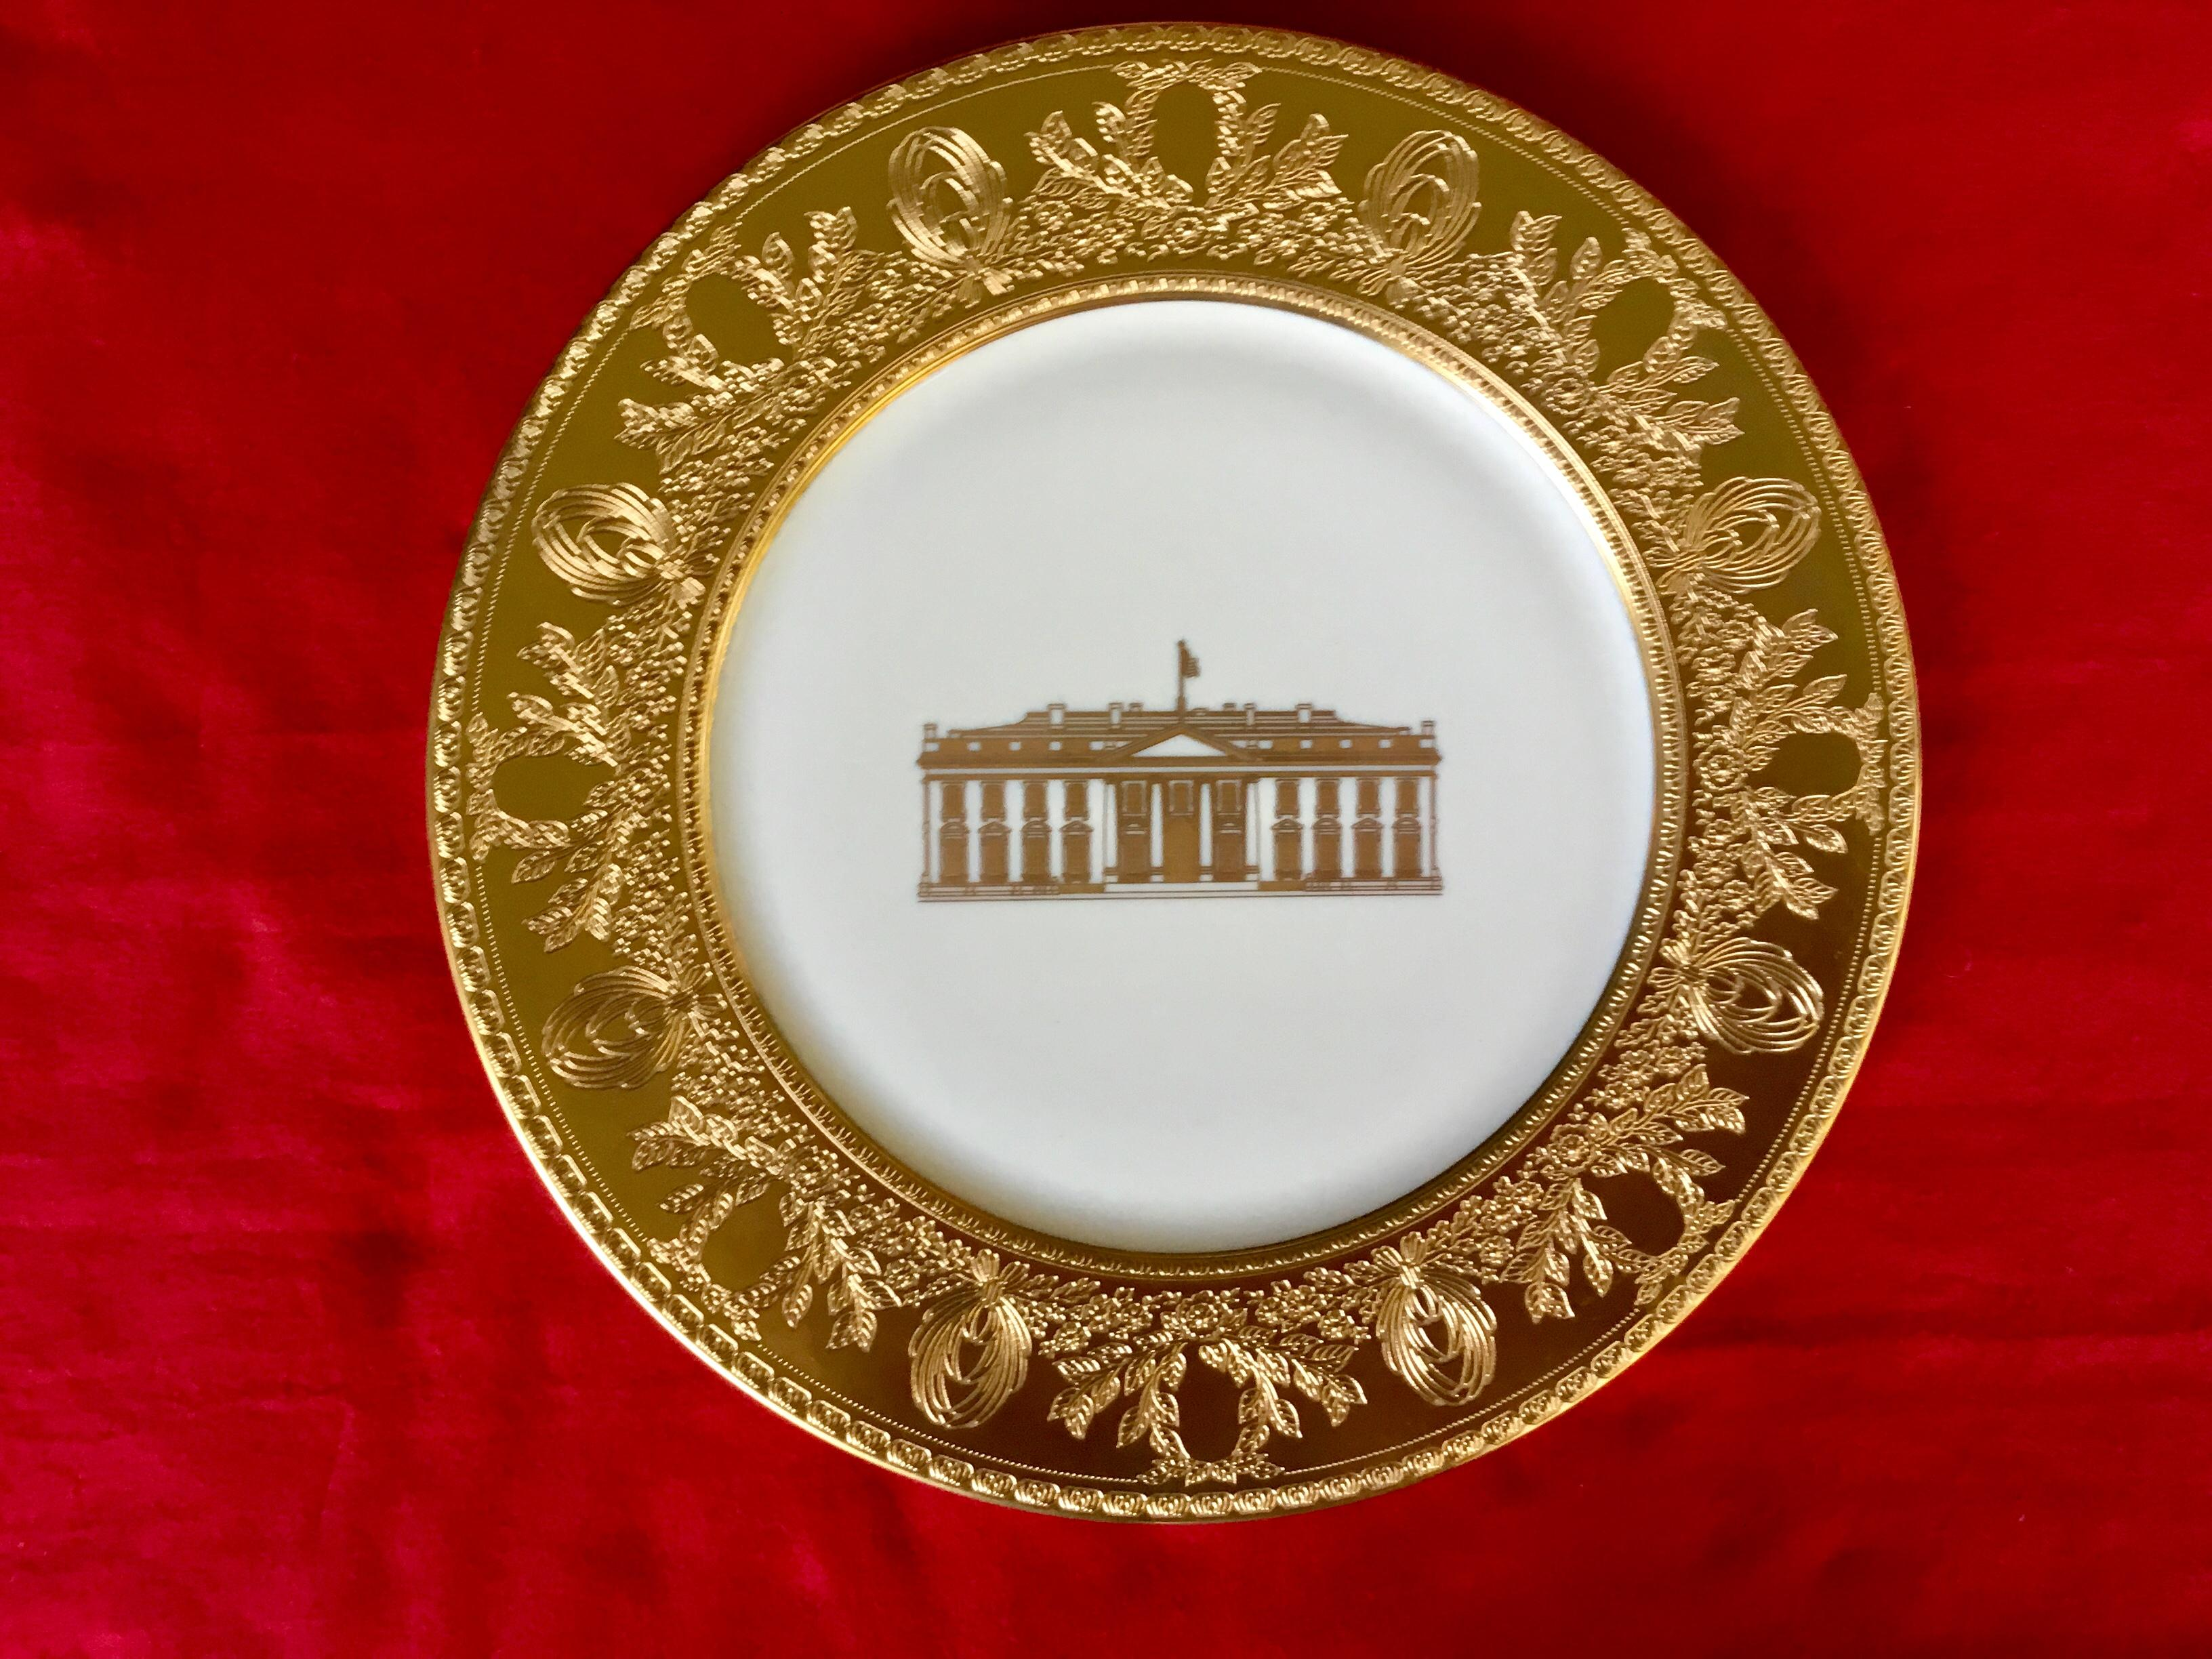 New2 Clinton service plate gold